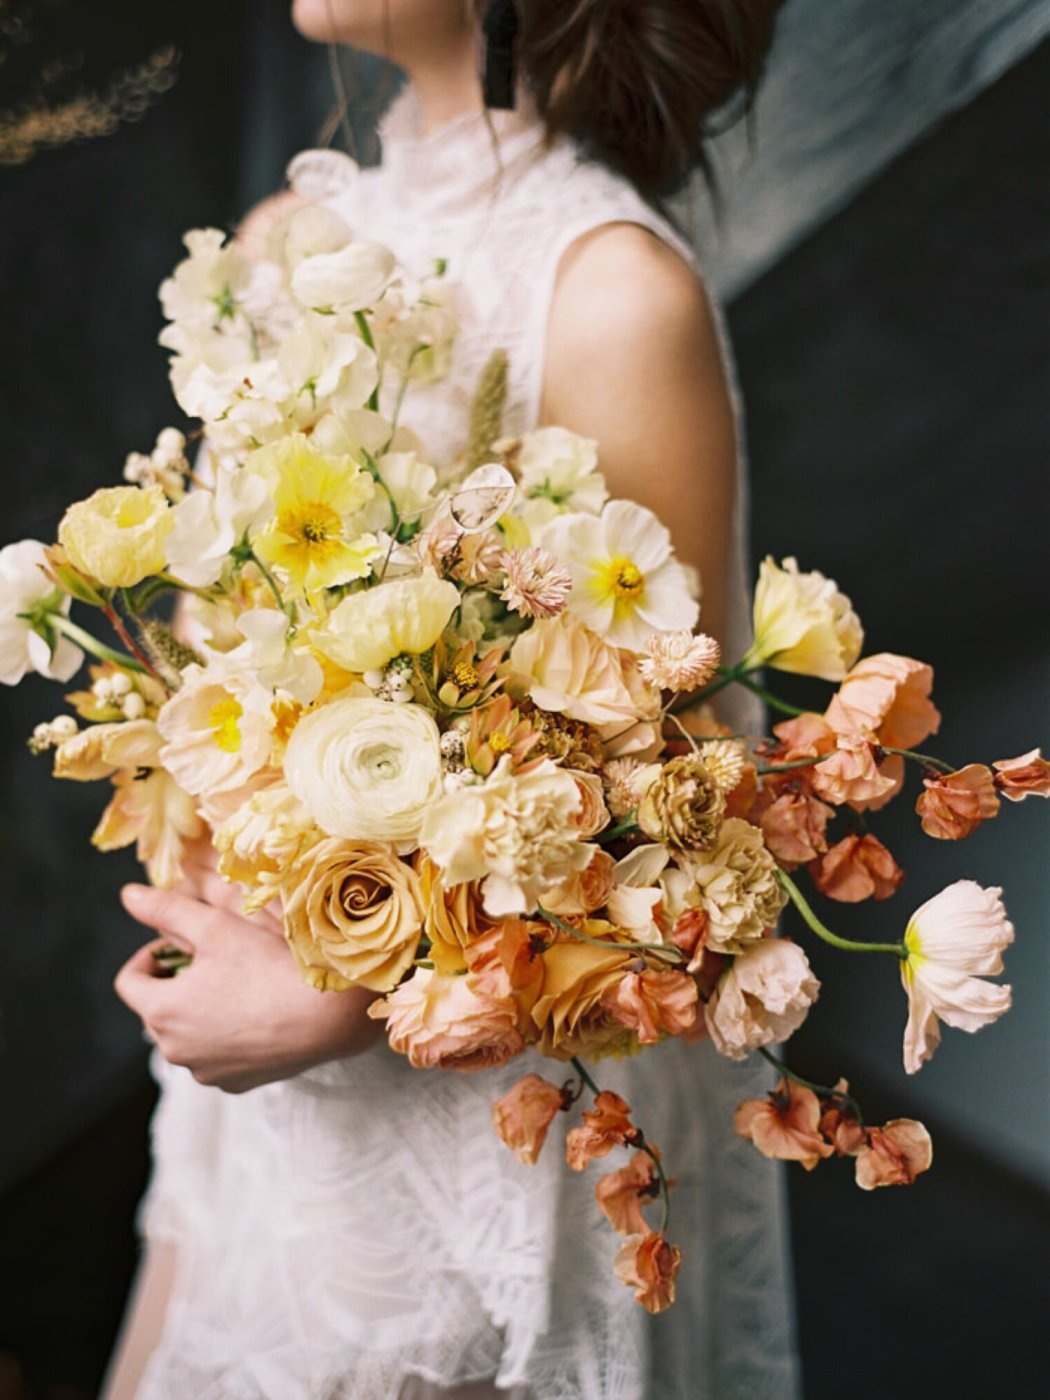 Ombre Bouquet-by-Gather-Design-Company-Anna-Peters-Photography-feature.jpg